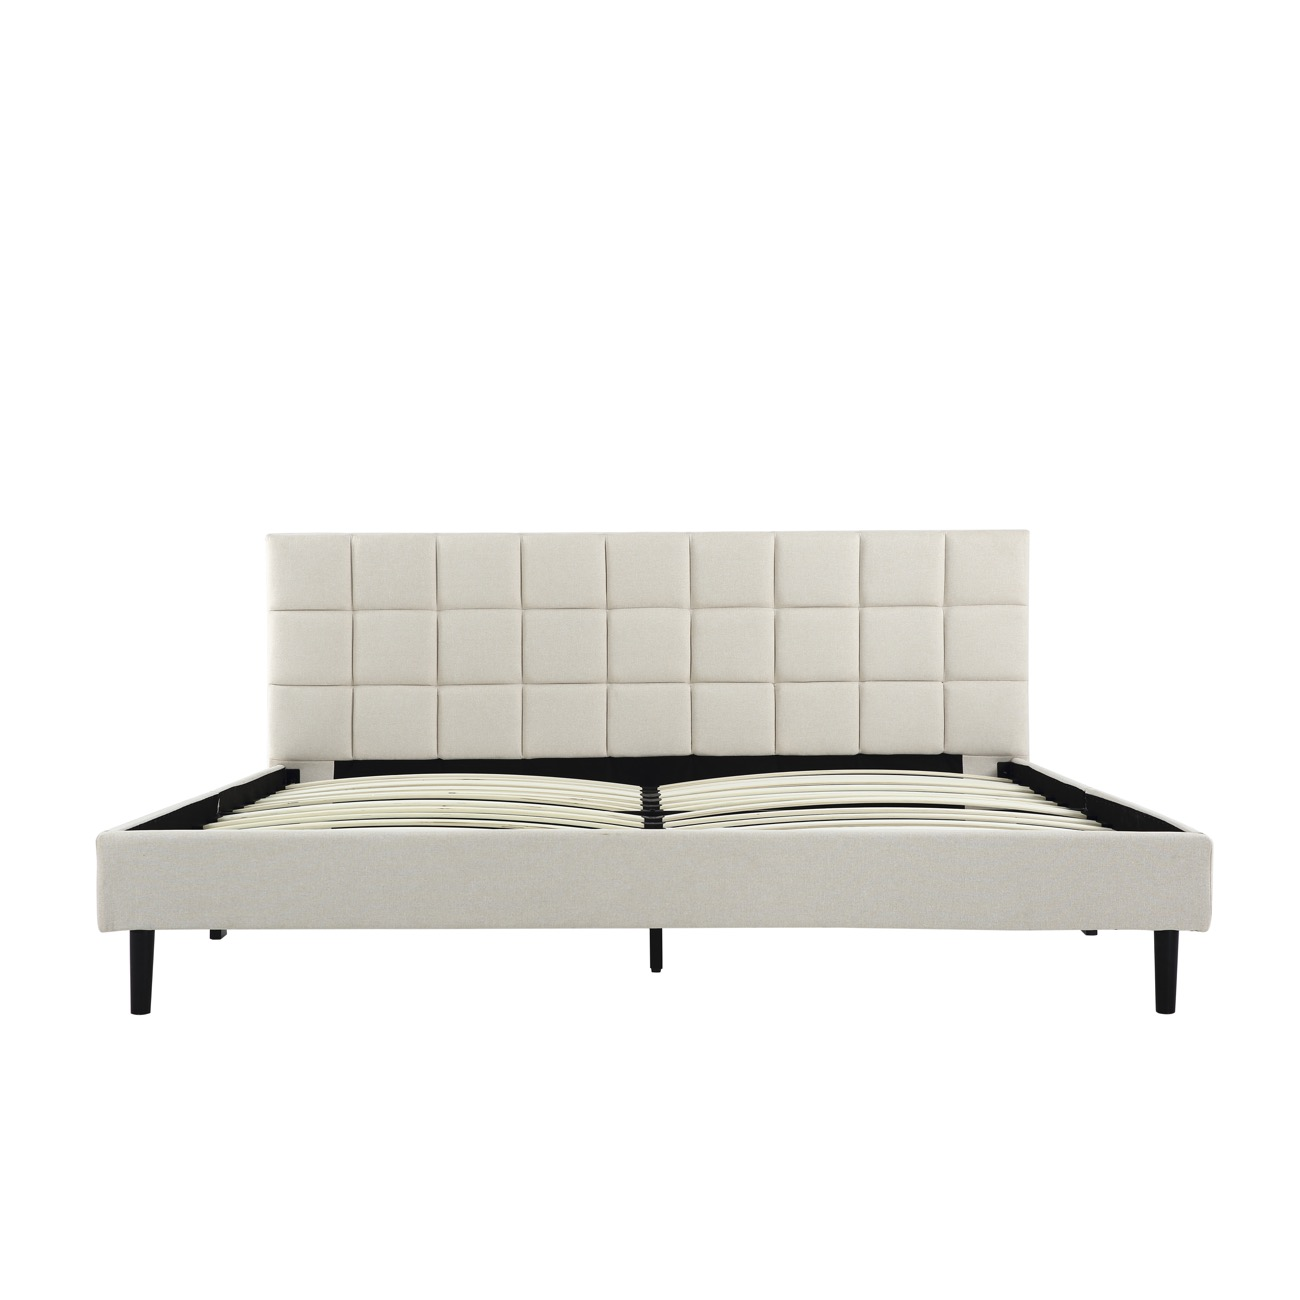 King Size Bed Frame Scallop Tufted Upholstered Headboard w/ Support ...